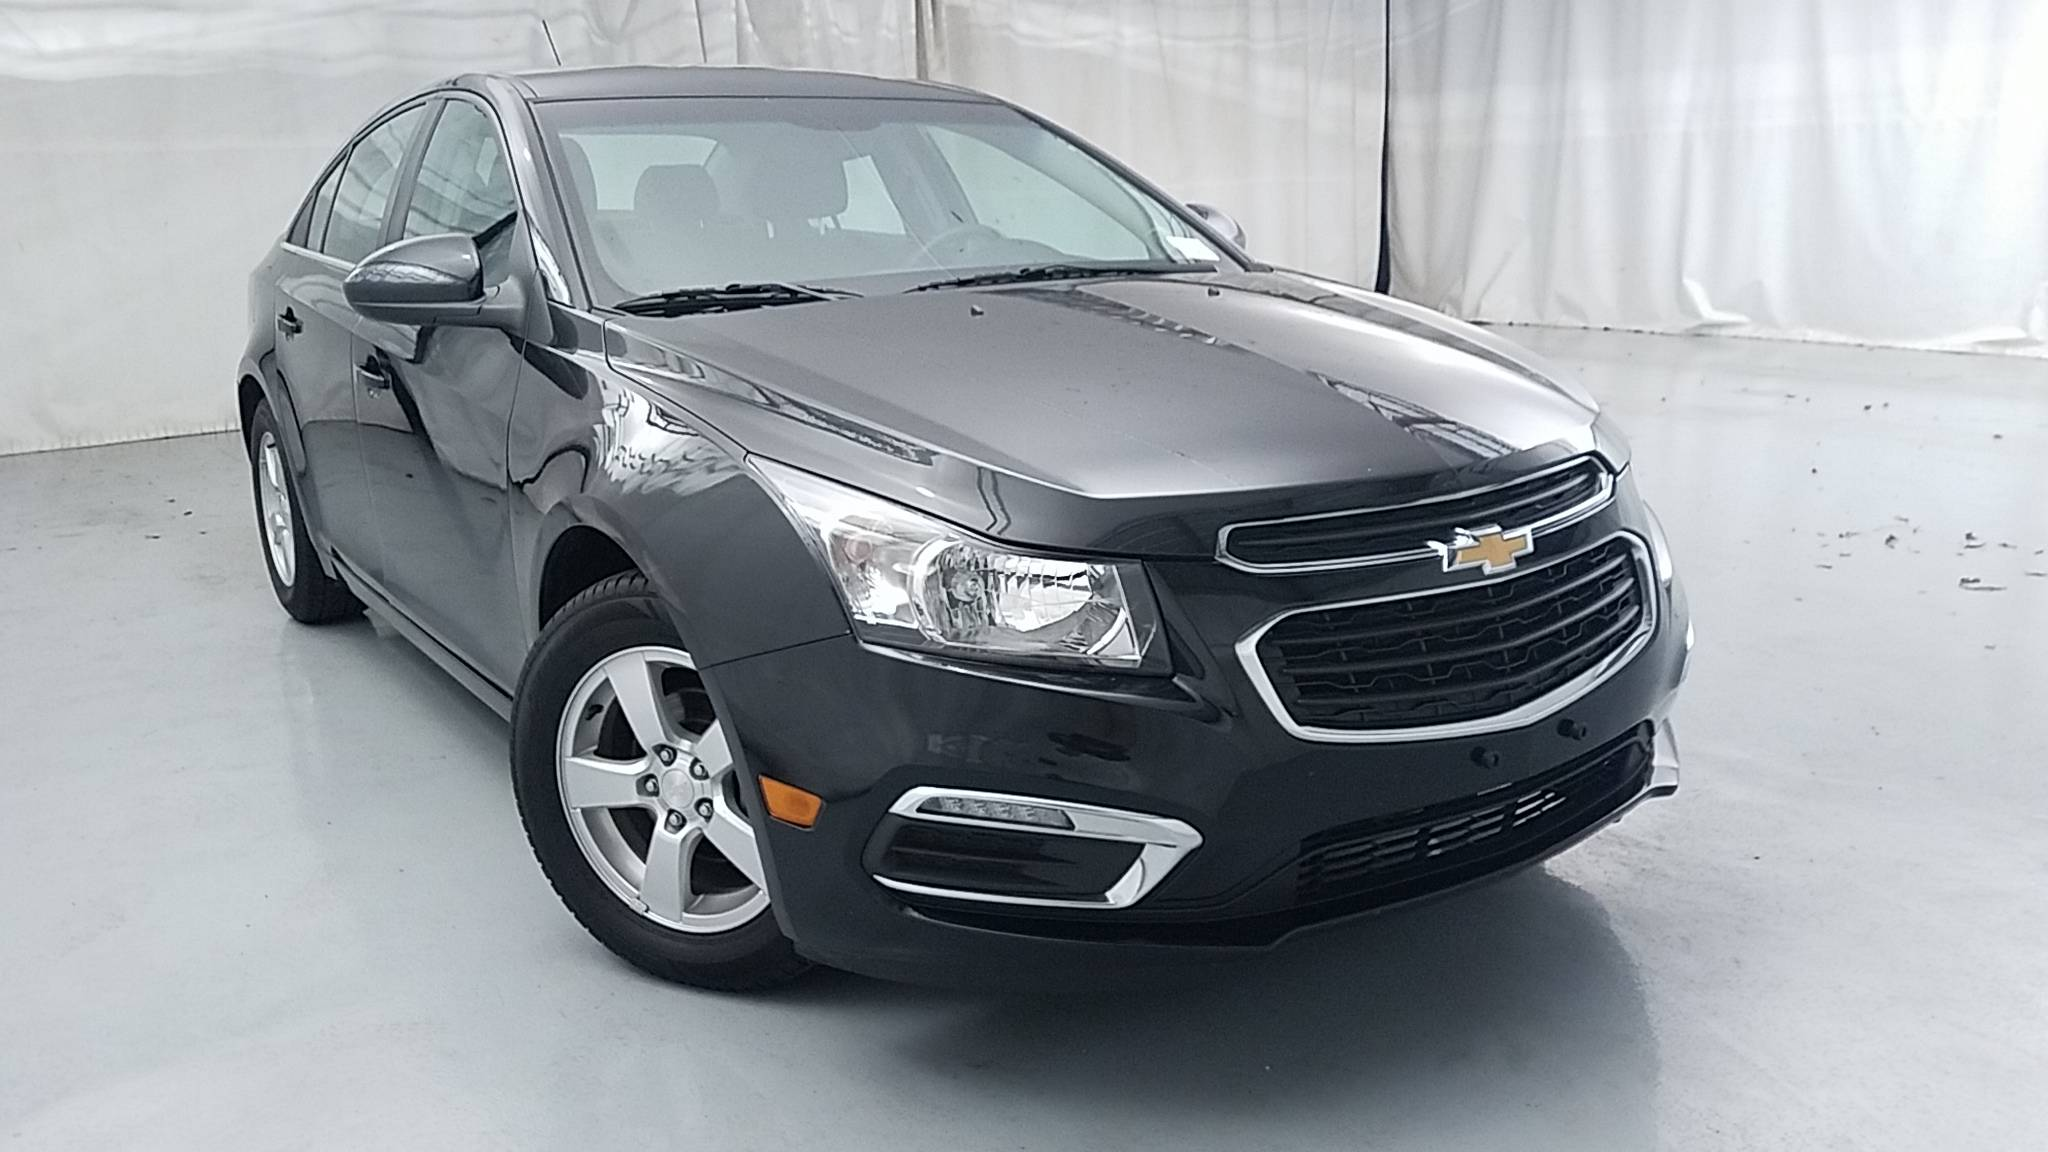 Used Chevrolet Malibu Vehicles for Sale near Hammond New Orleans